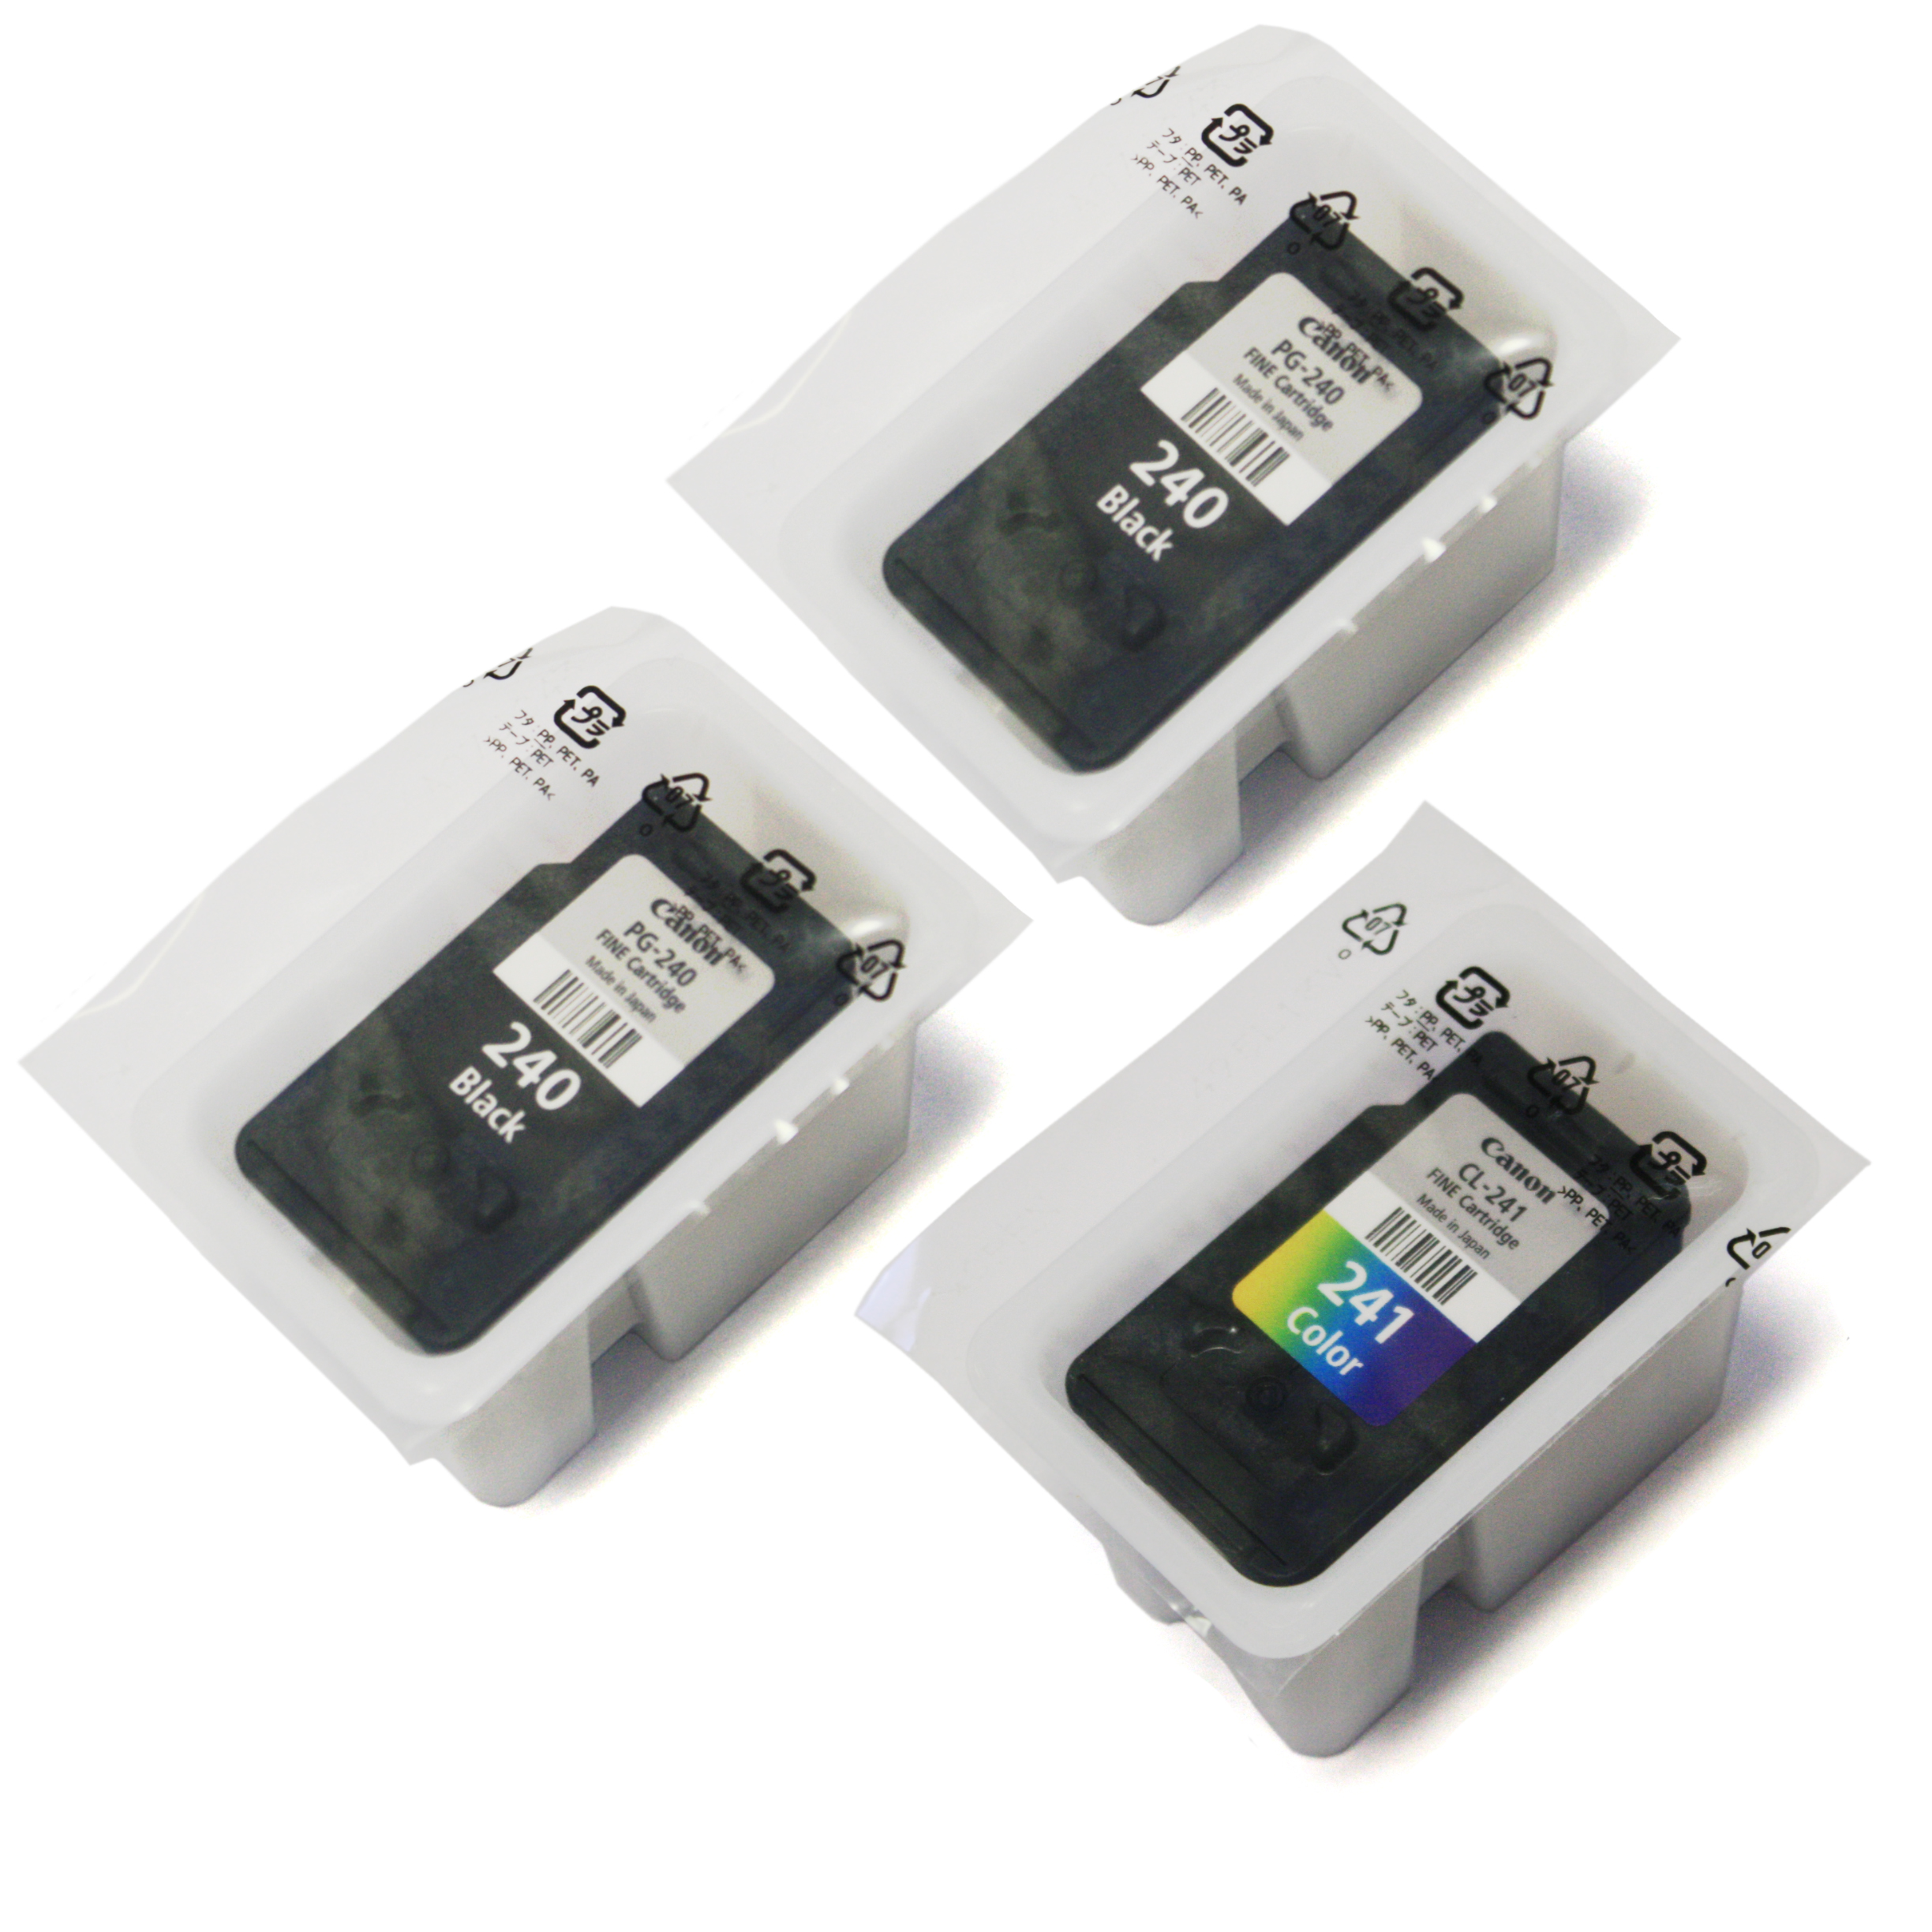 Canon Pixma PG-240 Black x2 & CL-241 - 3 Pack (Bulk Packaging)